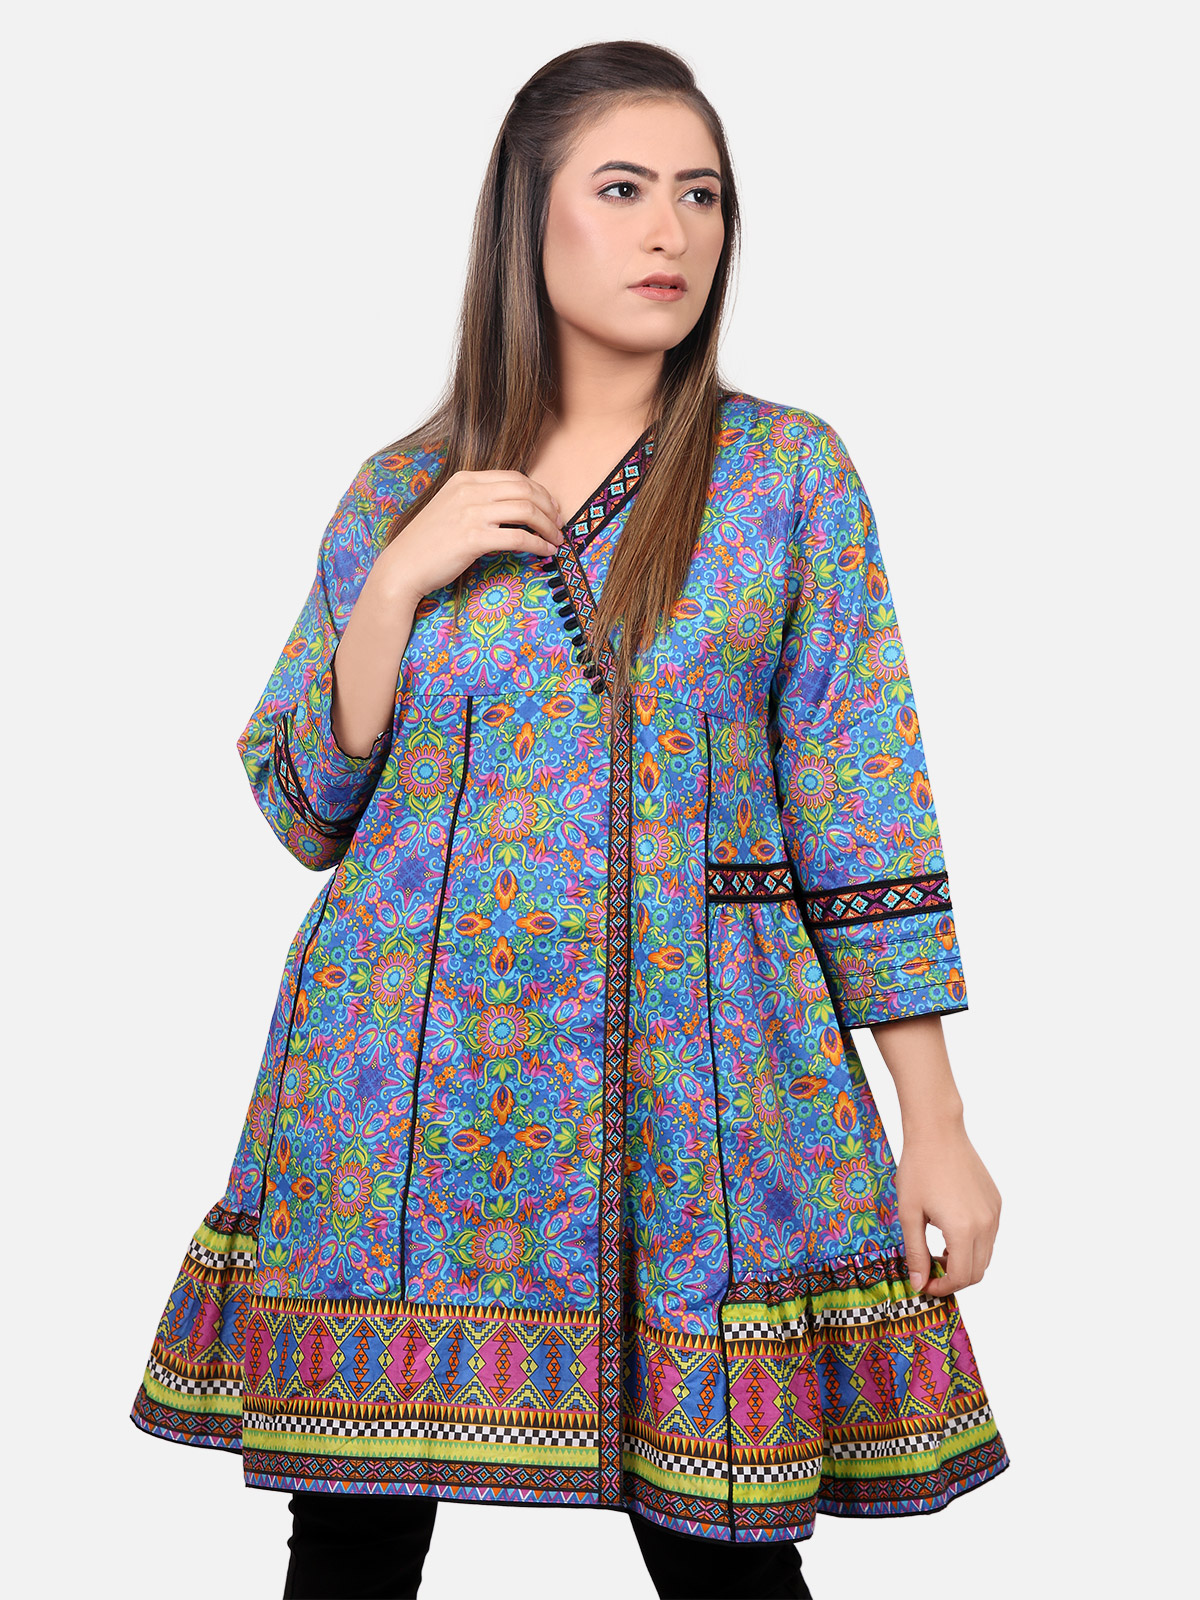 Stylish Funky Women Summer Casual Tops Kurtis 2019 Trends